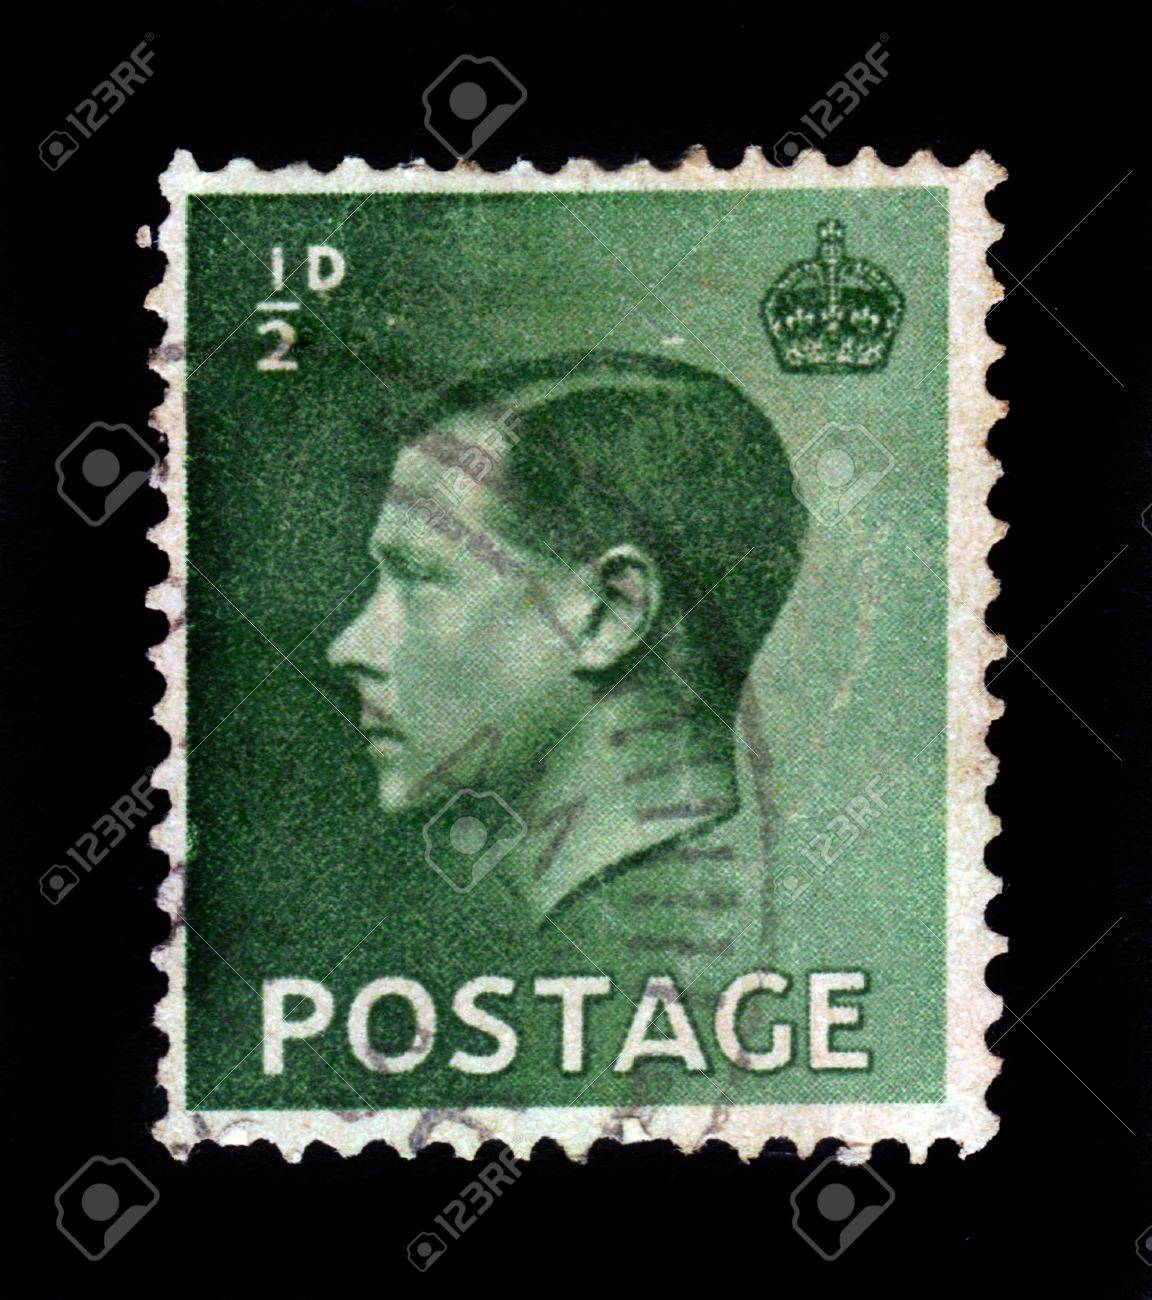 UNITED KINGDOM - CIRCA 1936  A stamp printed in England, shows Edward VIII, King of the United Kingdom, circa 1936 Stock Photo - 17499250